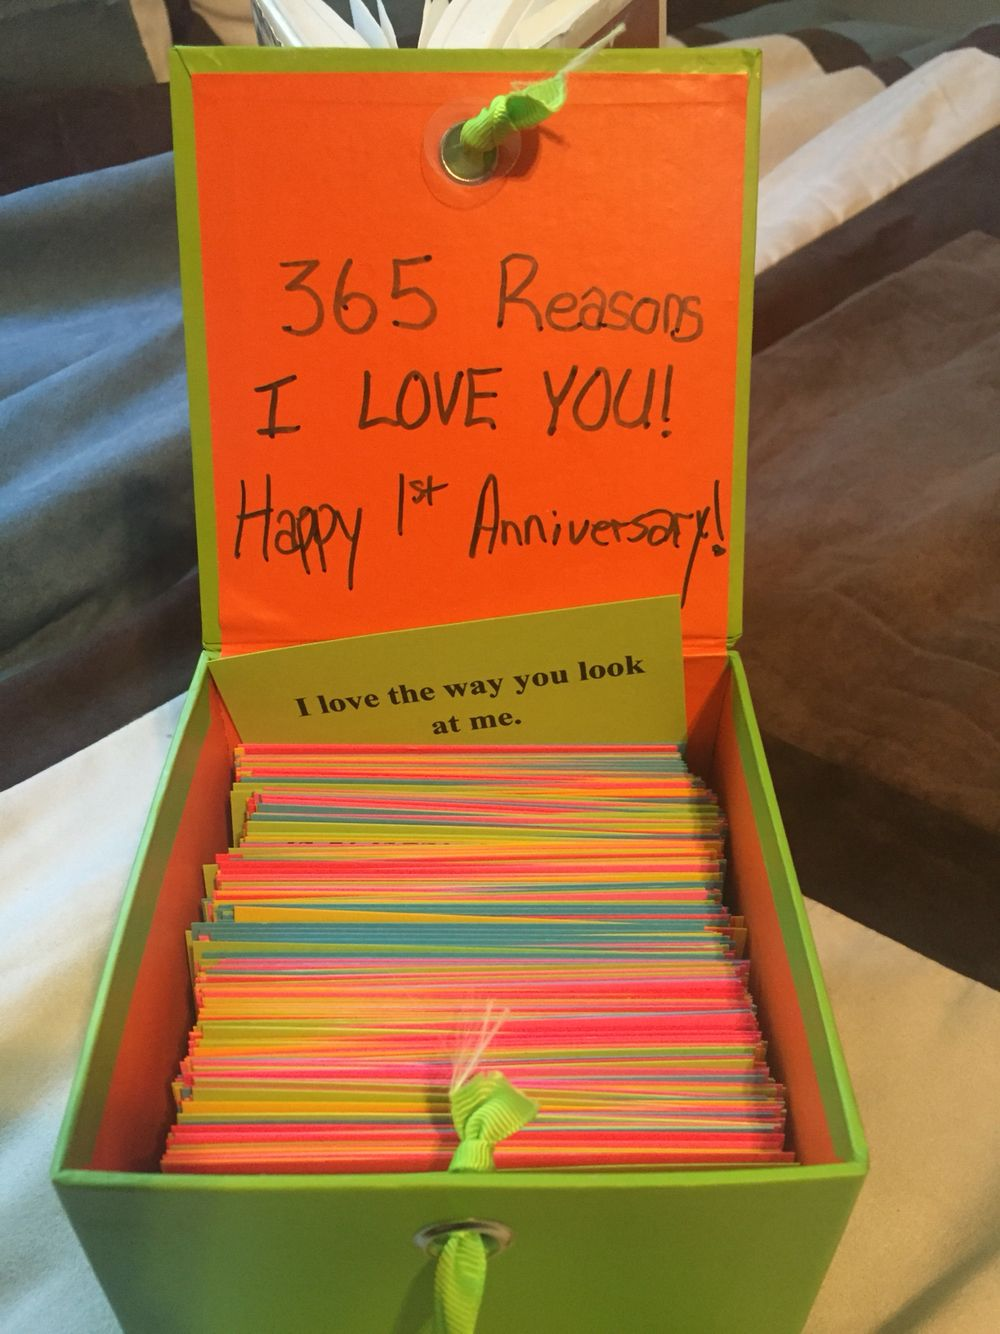 First wedding anniversary paper 365 reasons why i love for 1 year anniversary gift ideas boyfriend